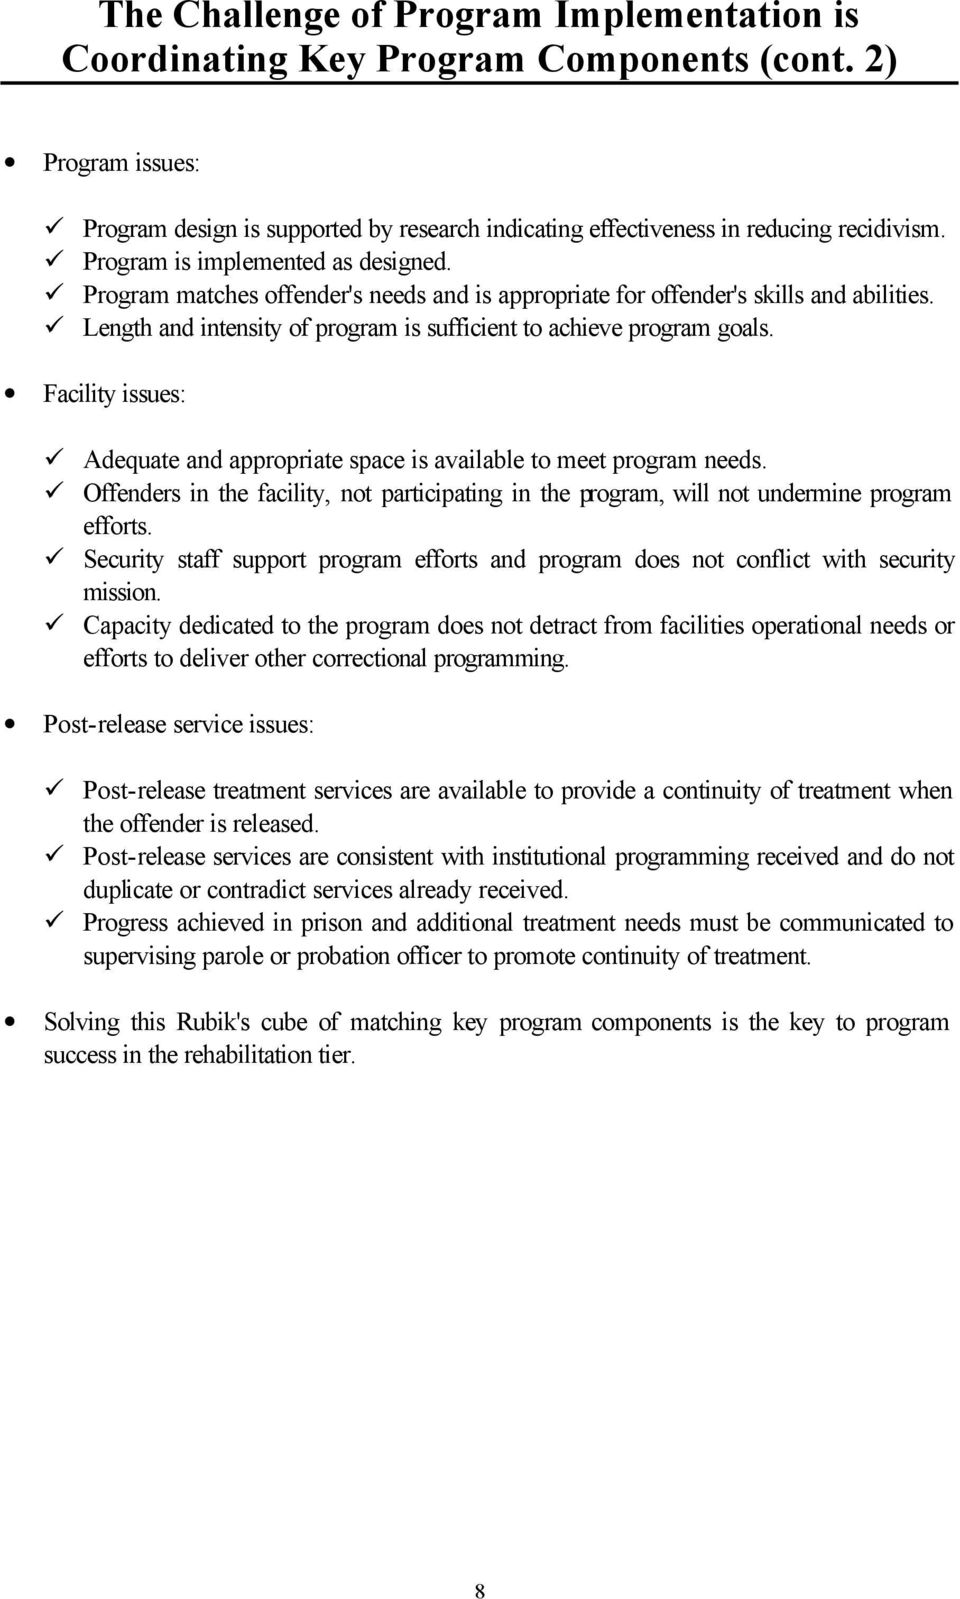 Facility issues: Adequate and appropriate space is available to meet program needs. Offenders in the facility, not participating in the program, will not undermine program efforts.